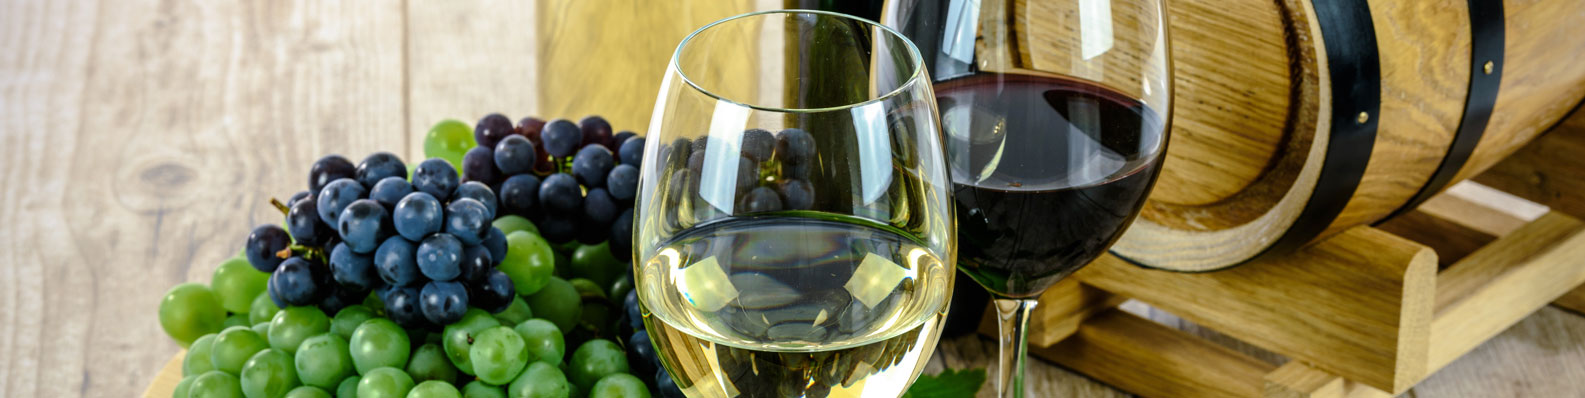 Assembling Your Event Planning Committee for Wine Tastings for Charity